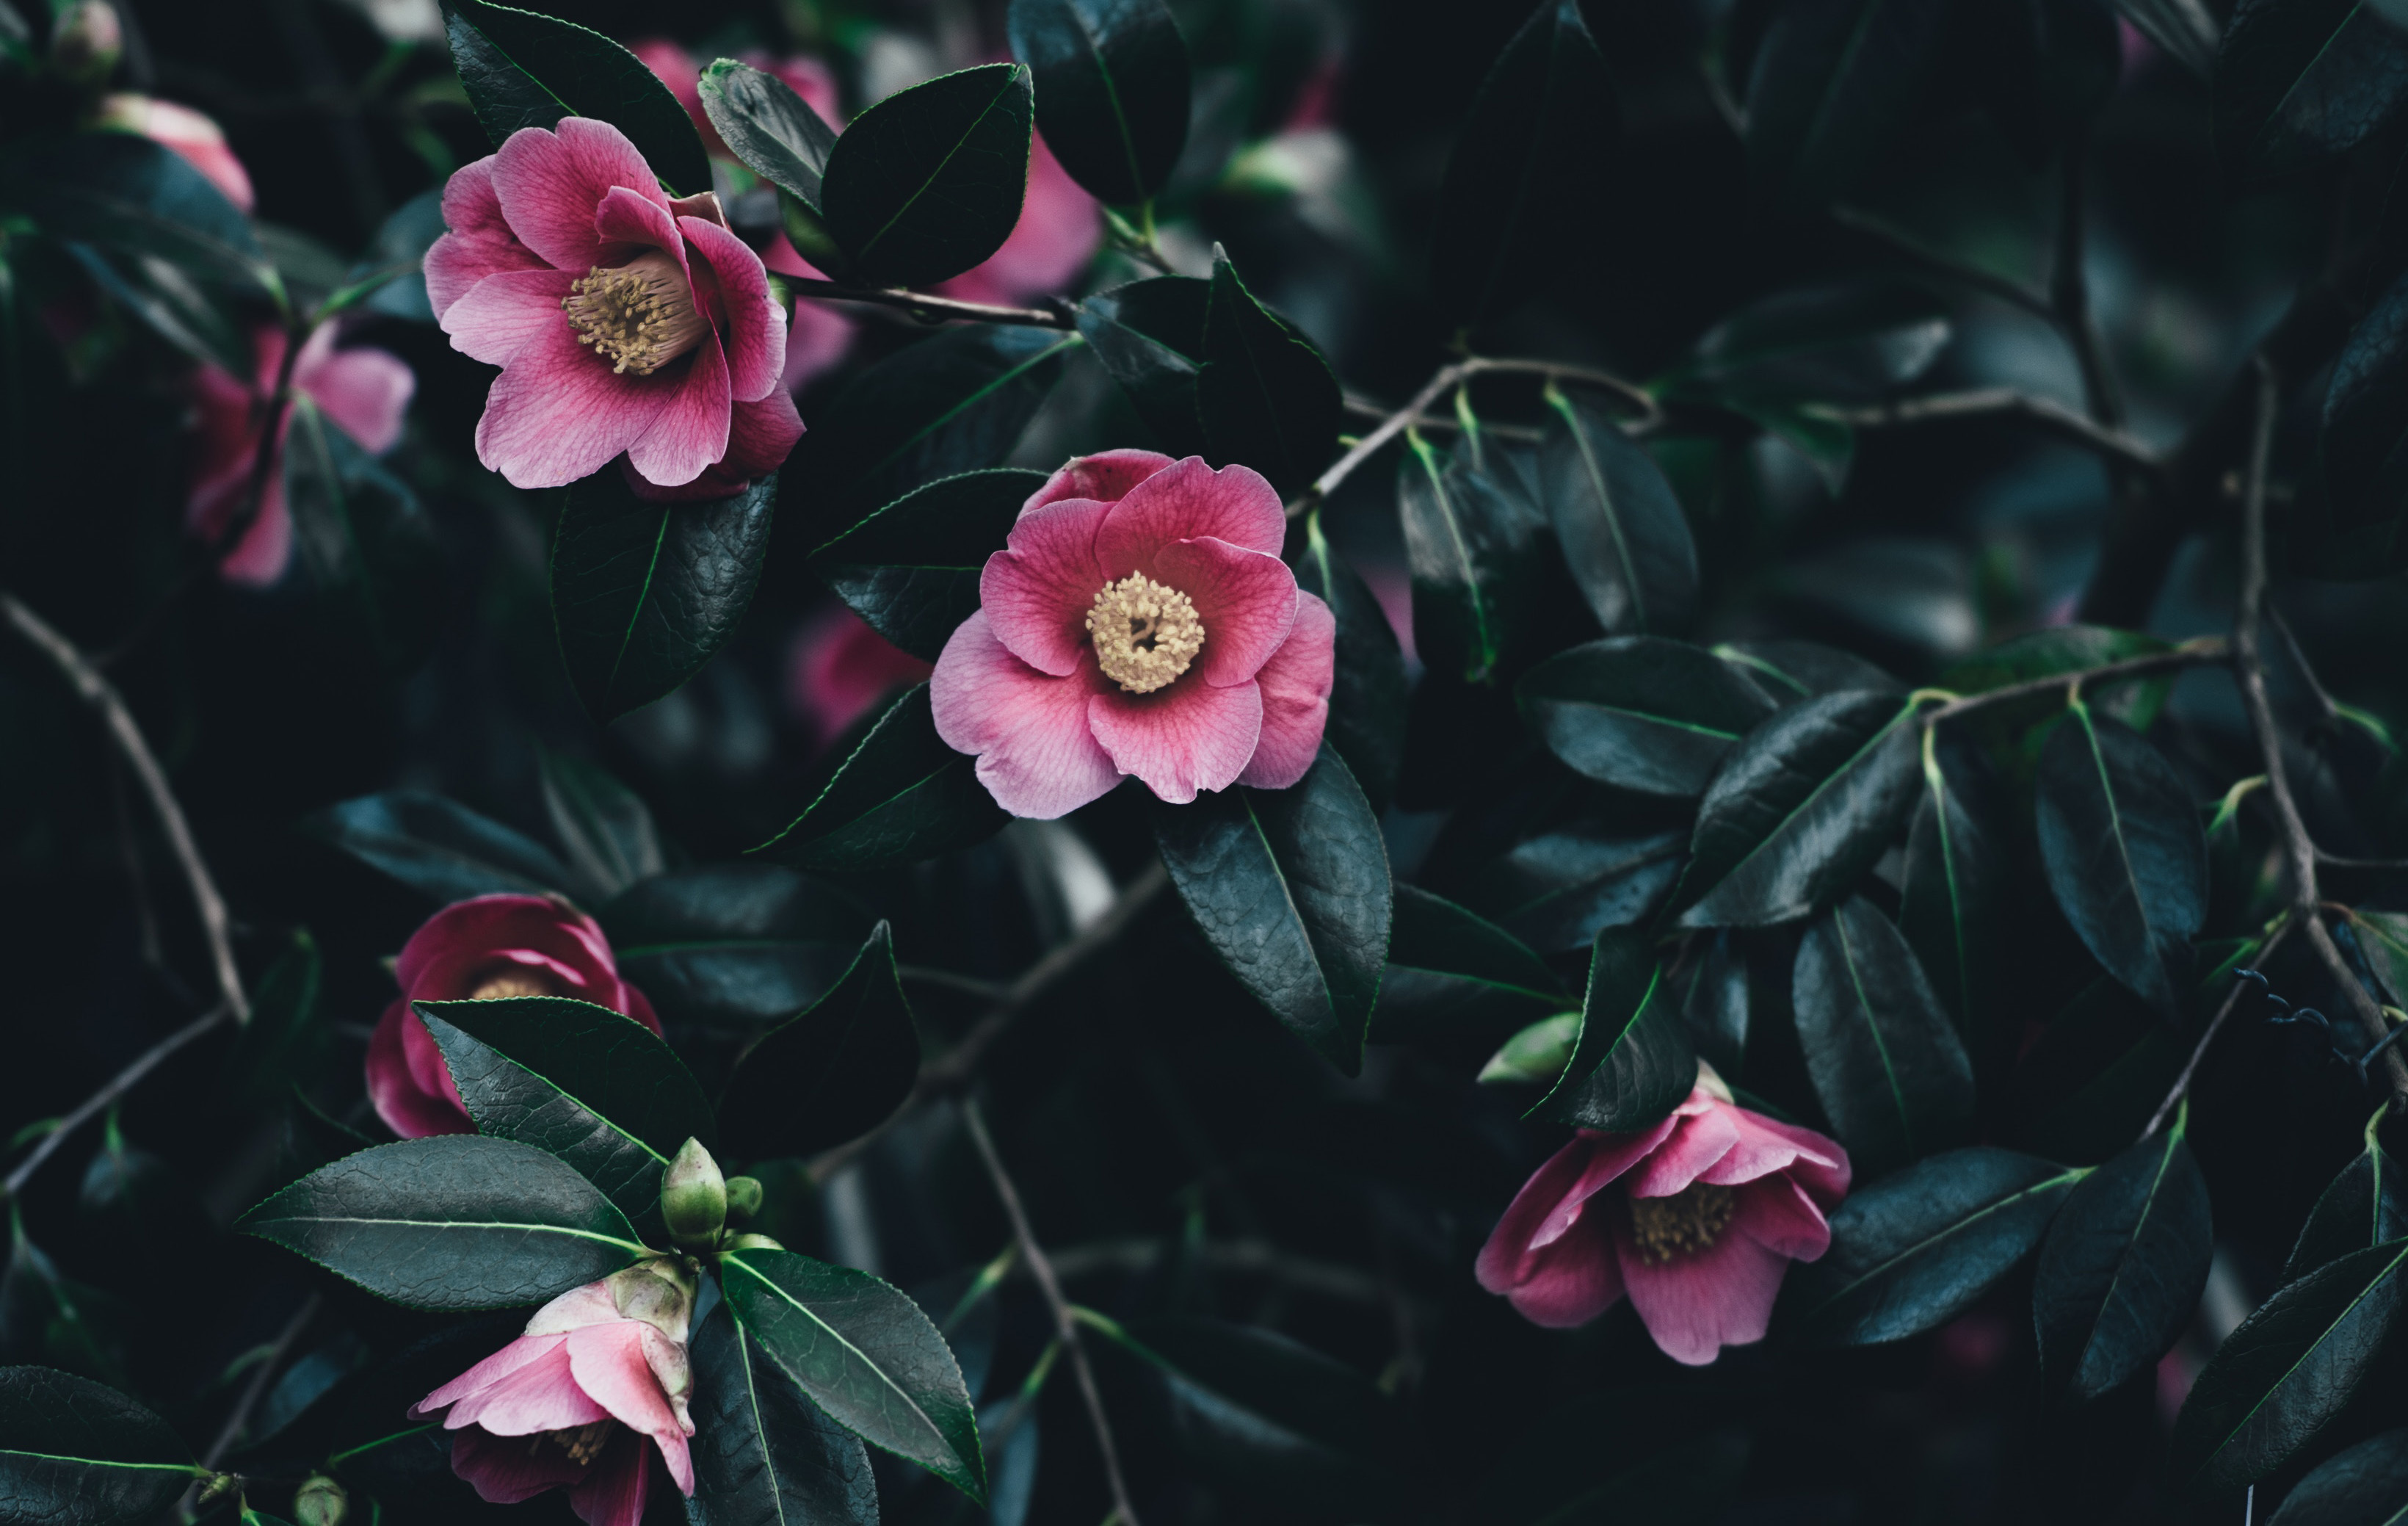 Photo by Annie Spratt on Unsplash